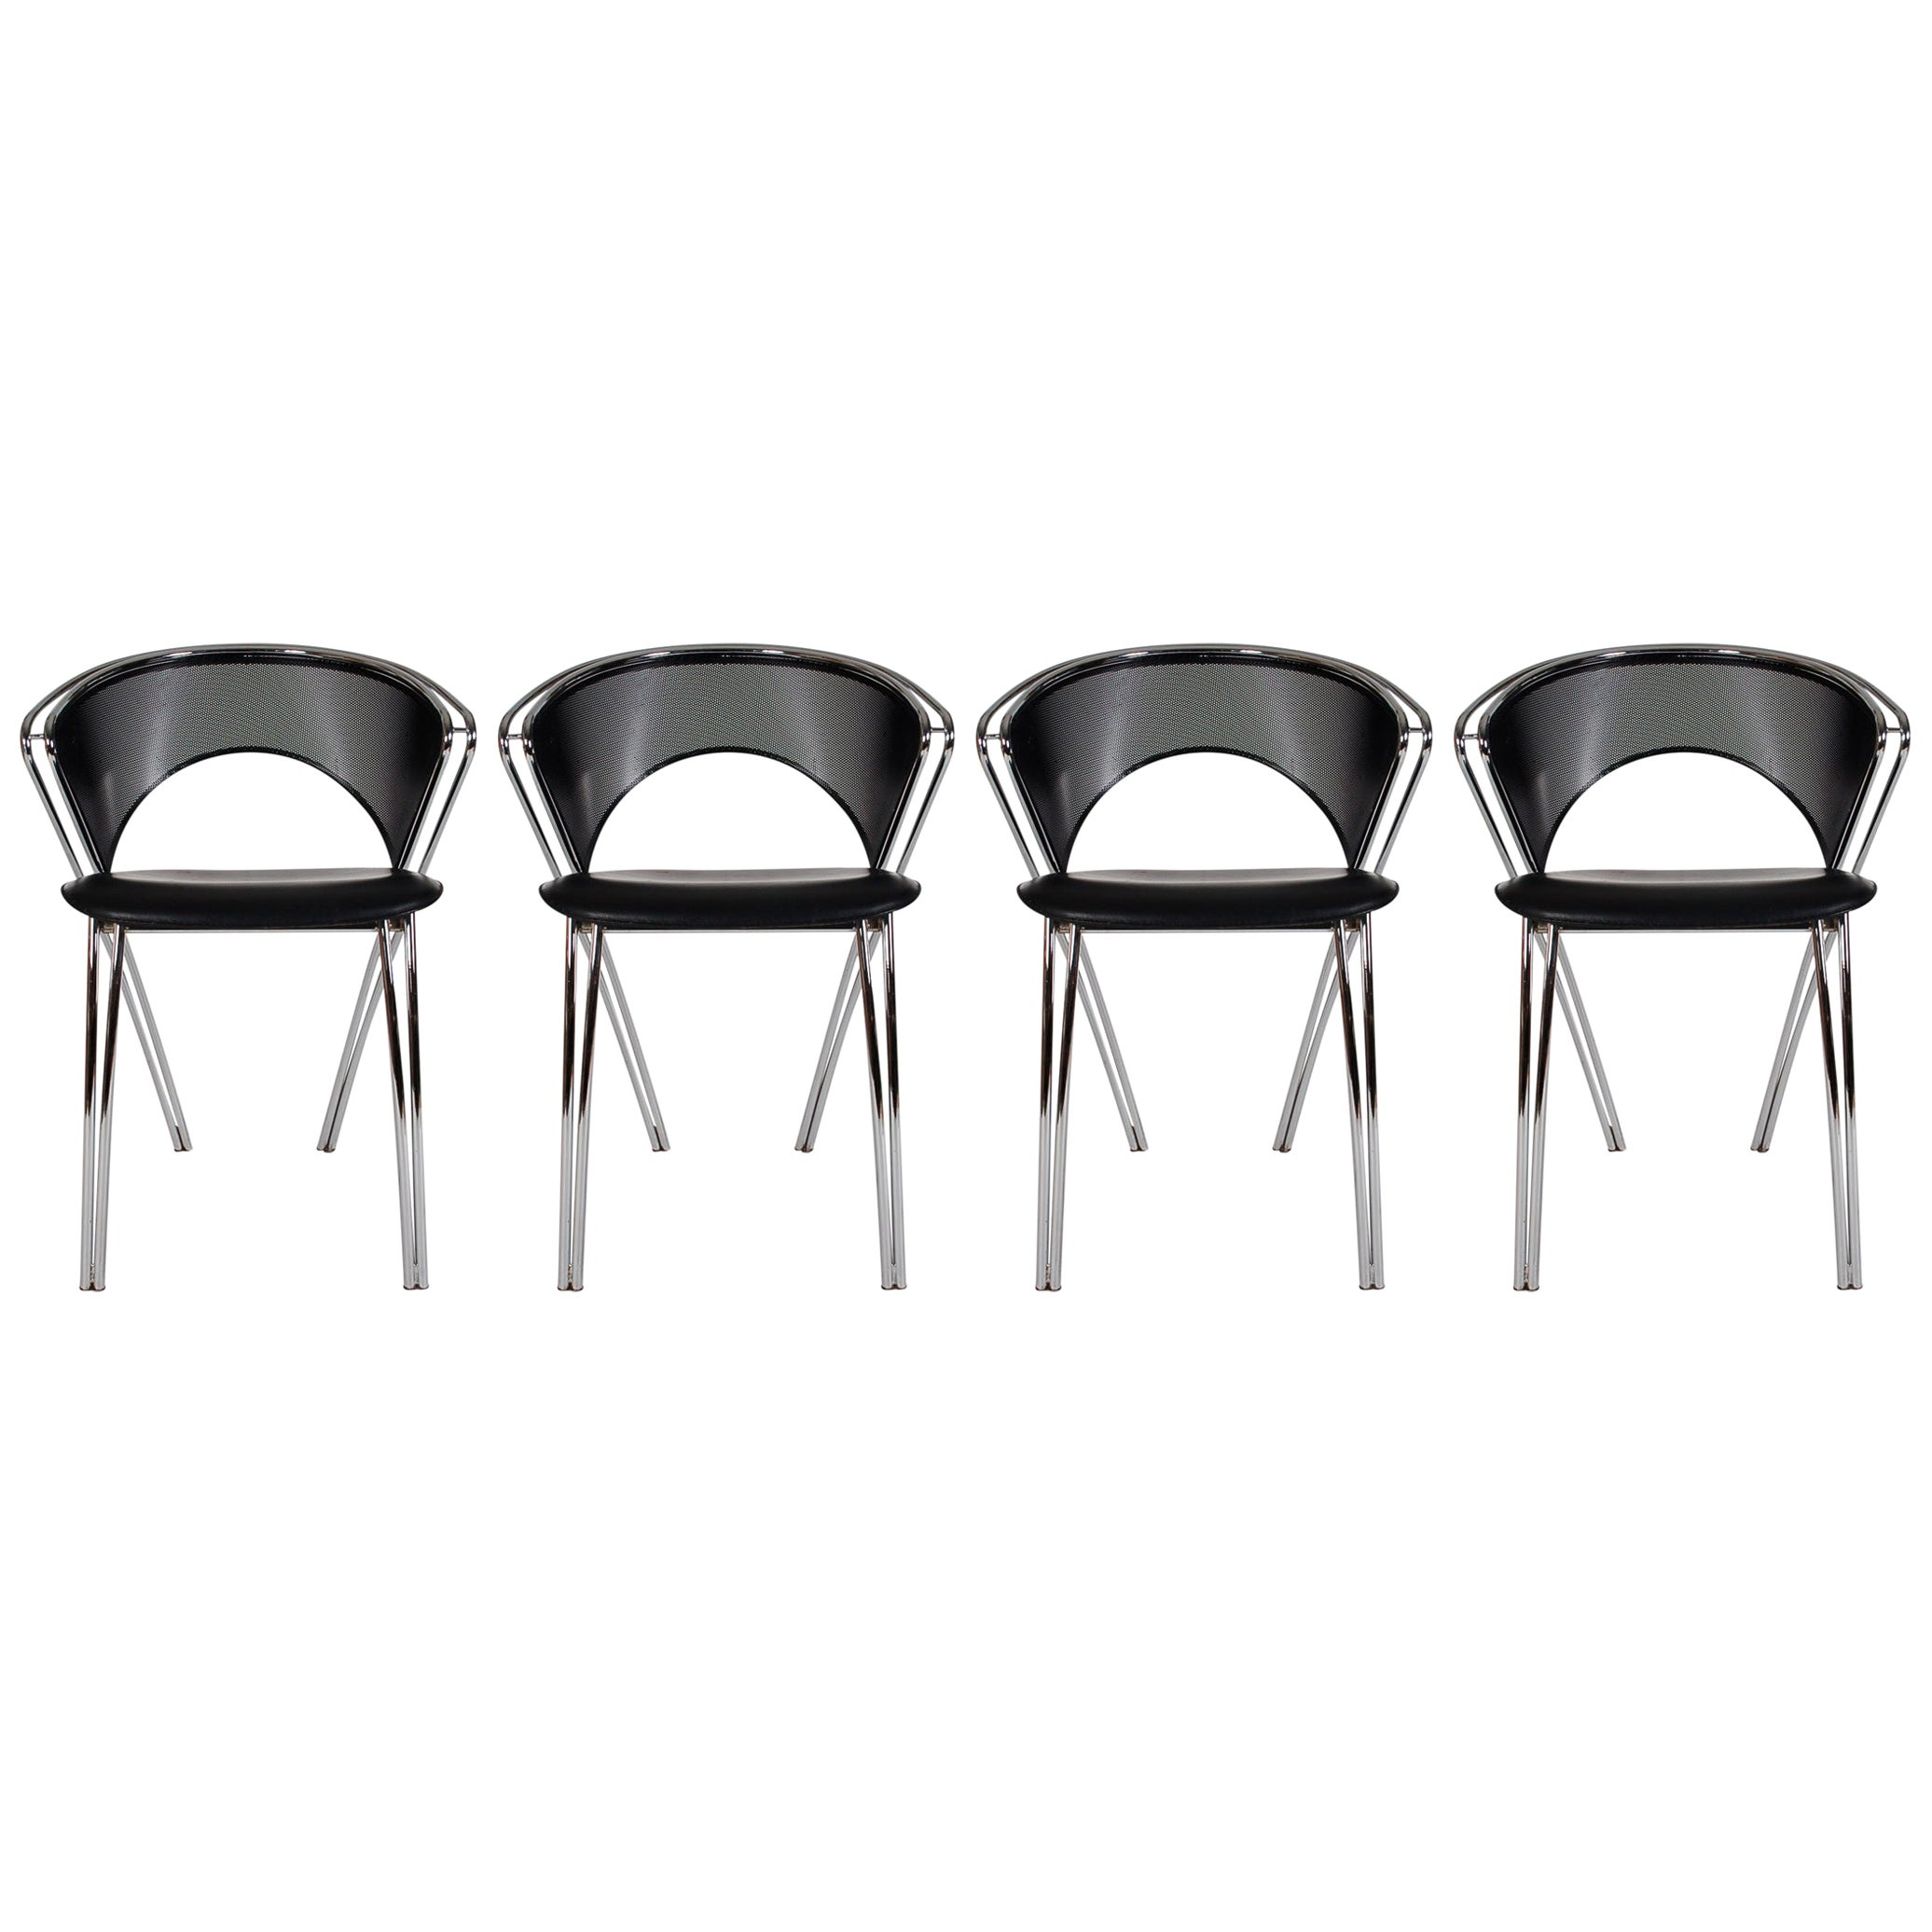 Set of Midcentury Italian Postmodern Black and Chrome Mesh Dining Chairs Set